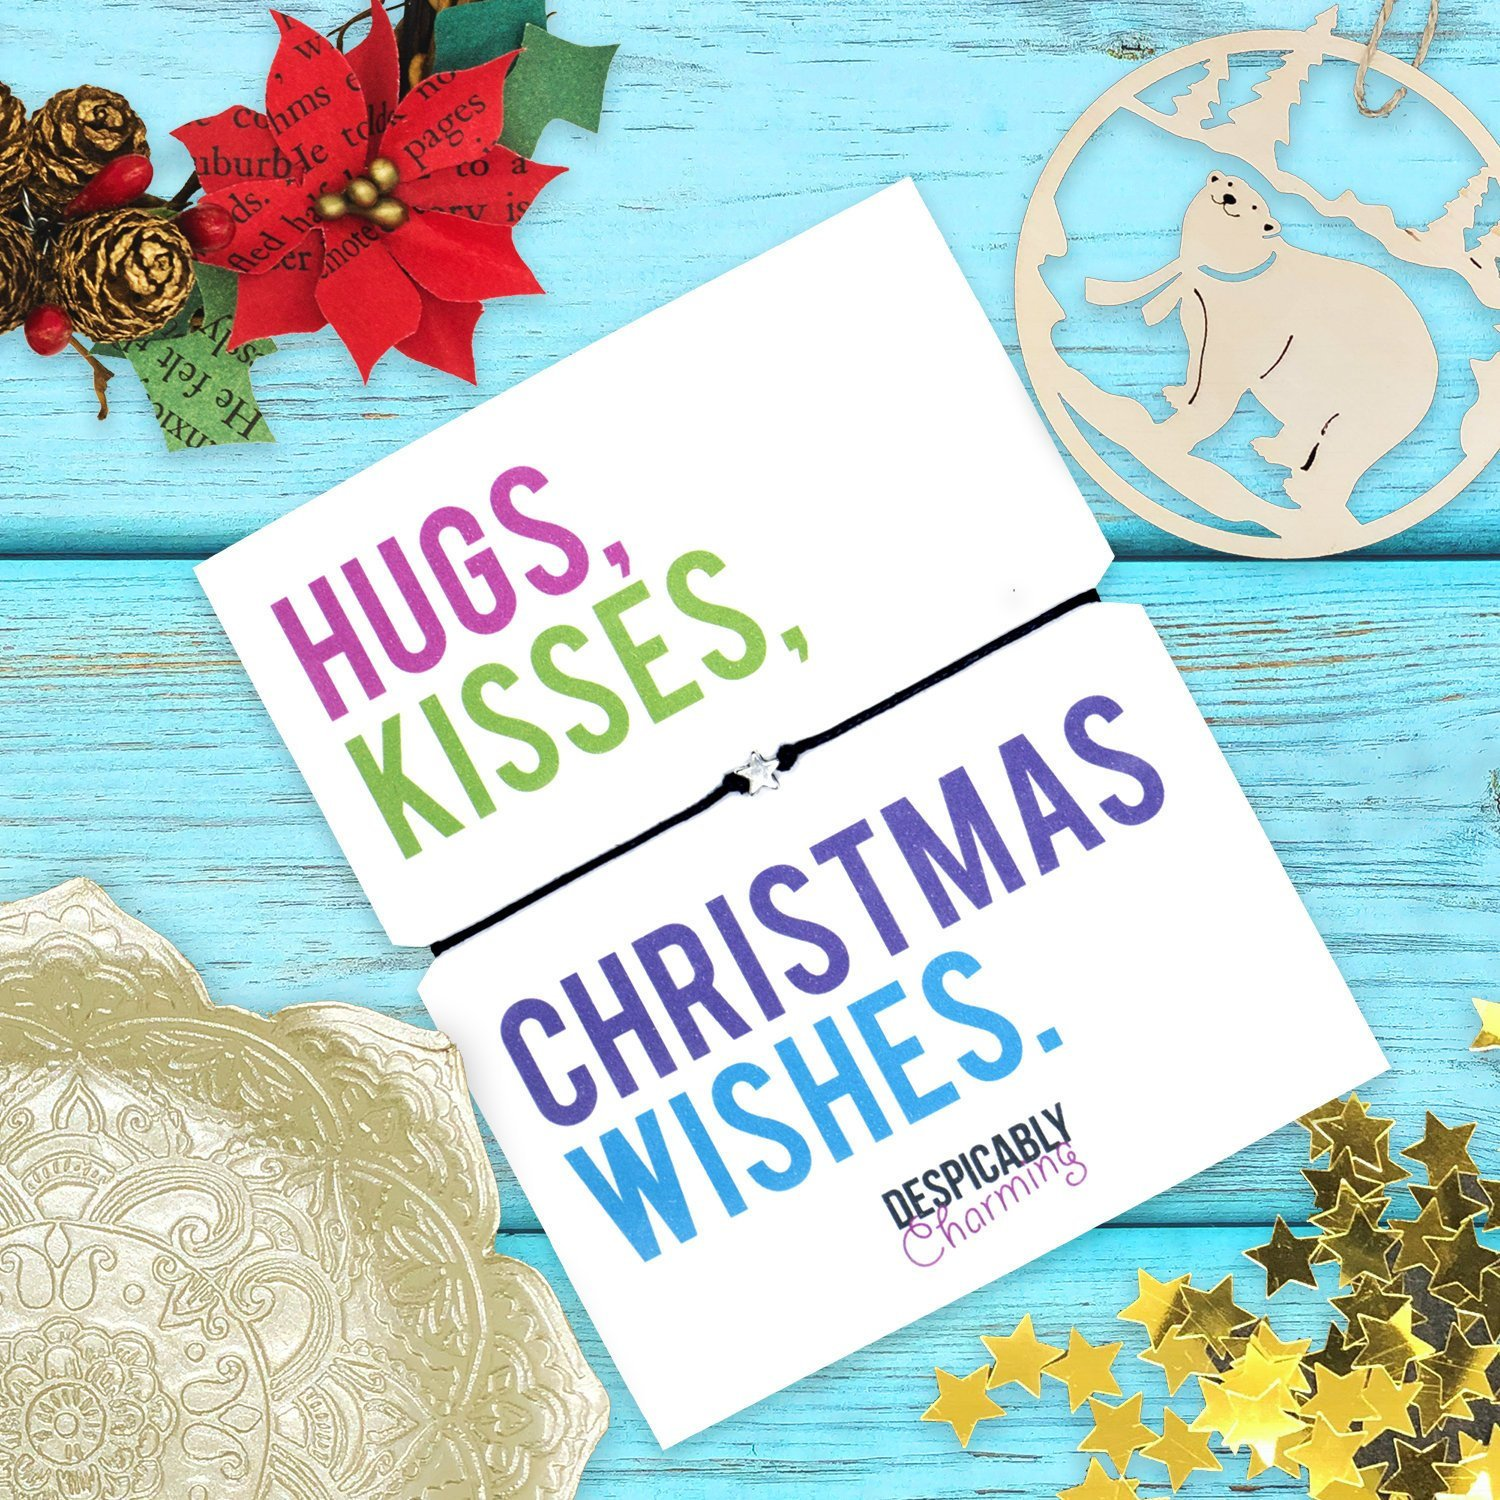 Christmas Wishes Card.Christmas Wish Bracelet Hugs Kisses And Christmas Wishes Holiday Gift Personalised Christmas Card Holiday Bracelet Secret Santa Under 5